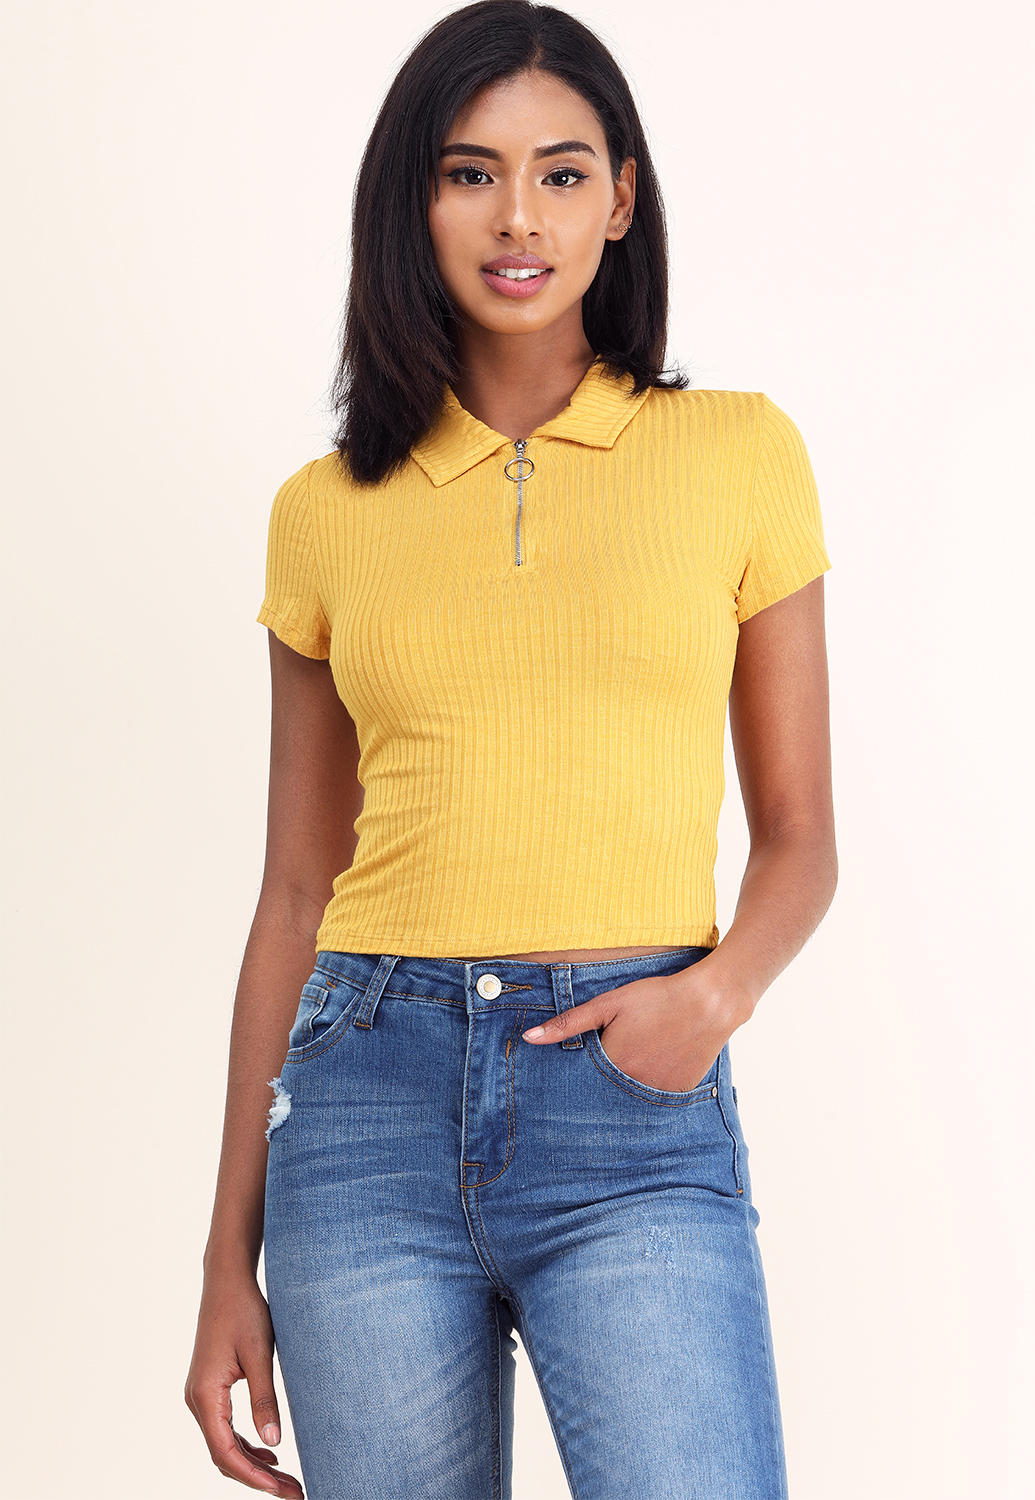 Zipper Up Lined Ribbed Top